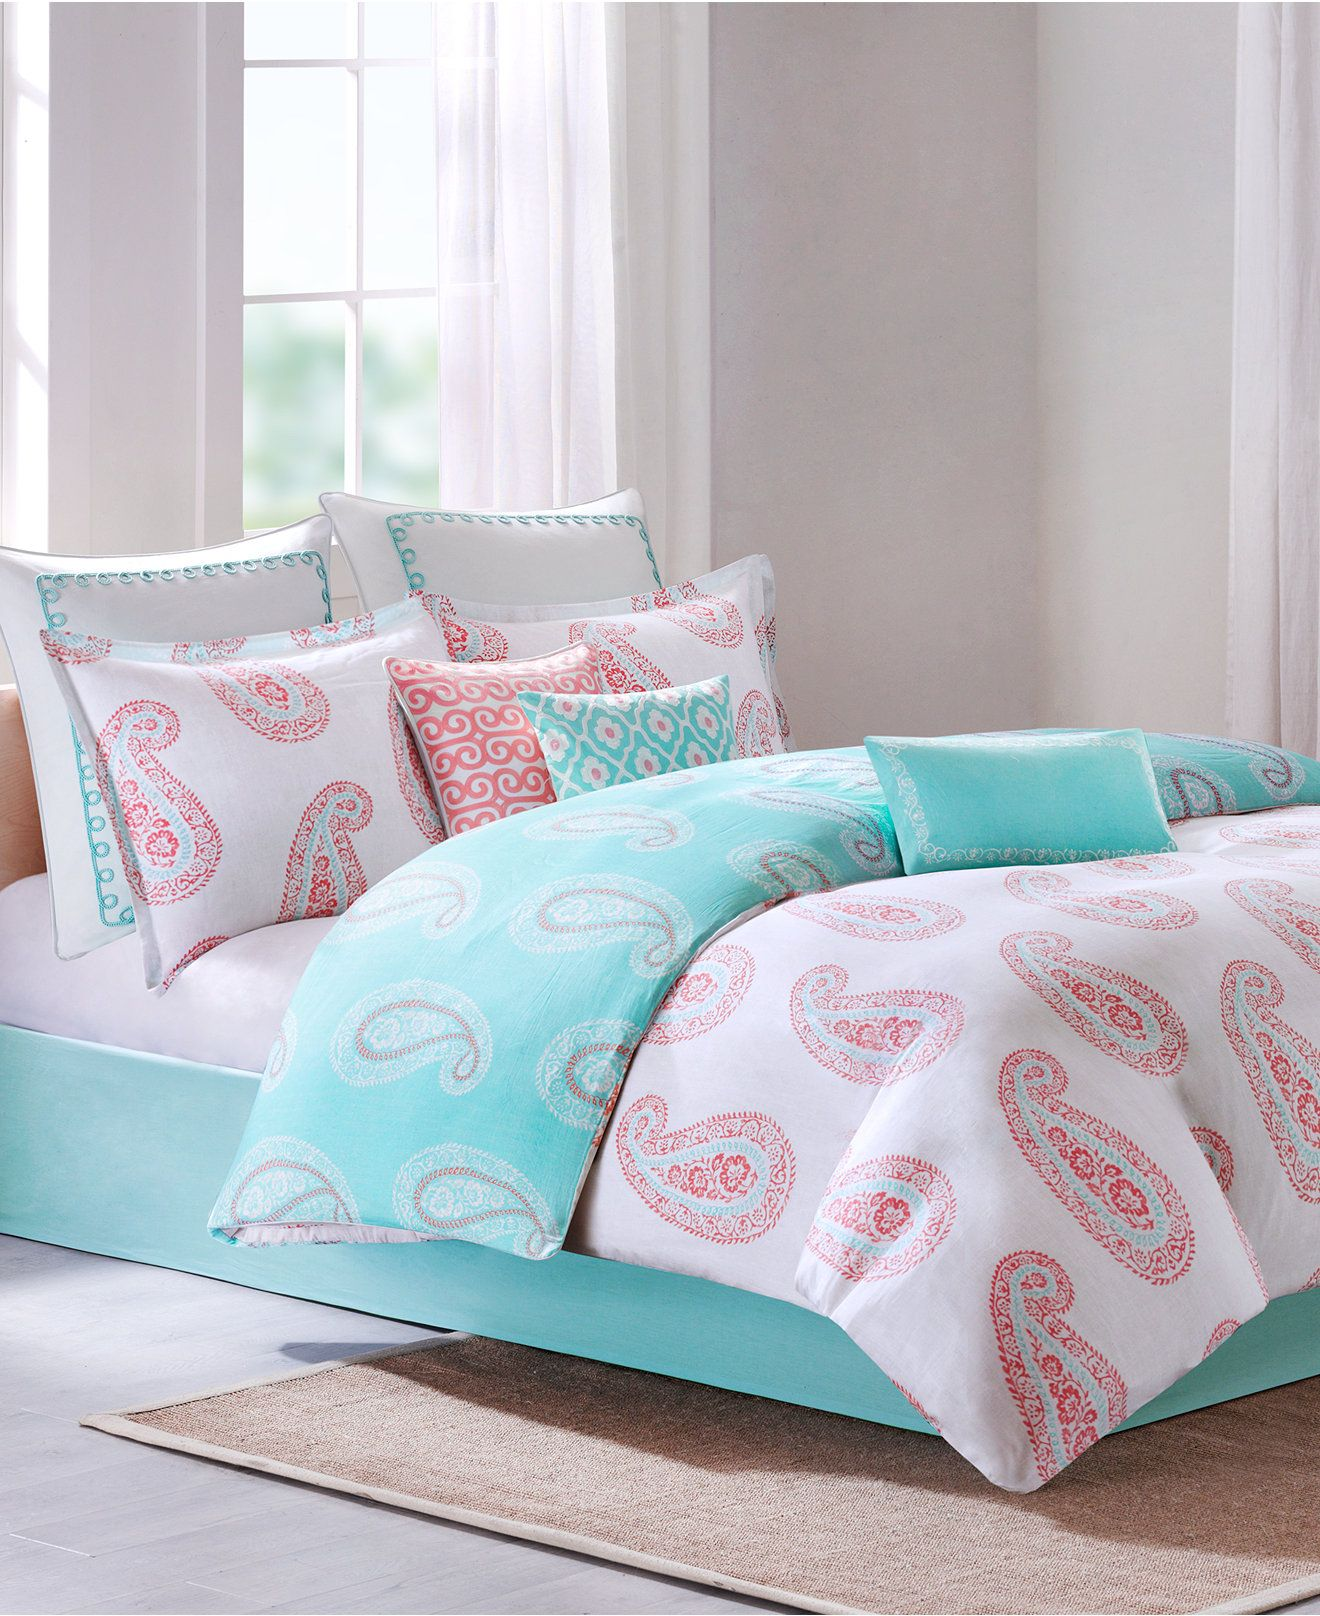 CLOSEOUT Echo Madira Coral Bedding Collection Echo Bed & Bath